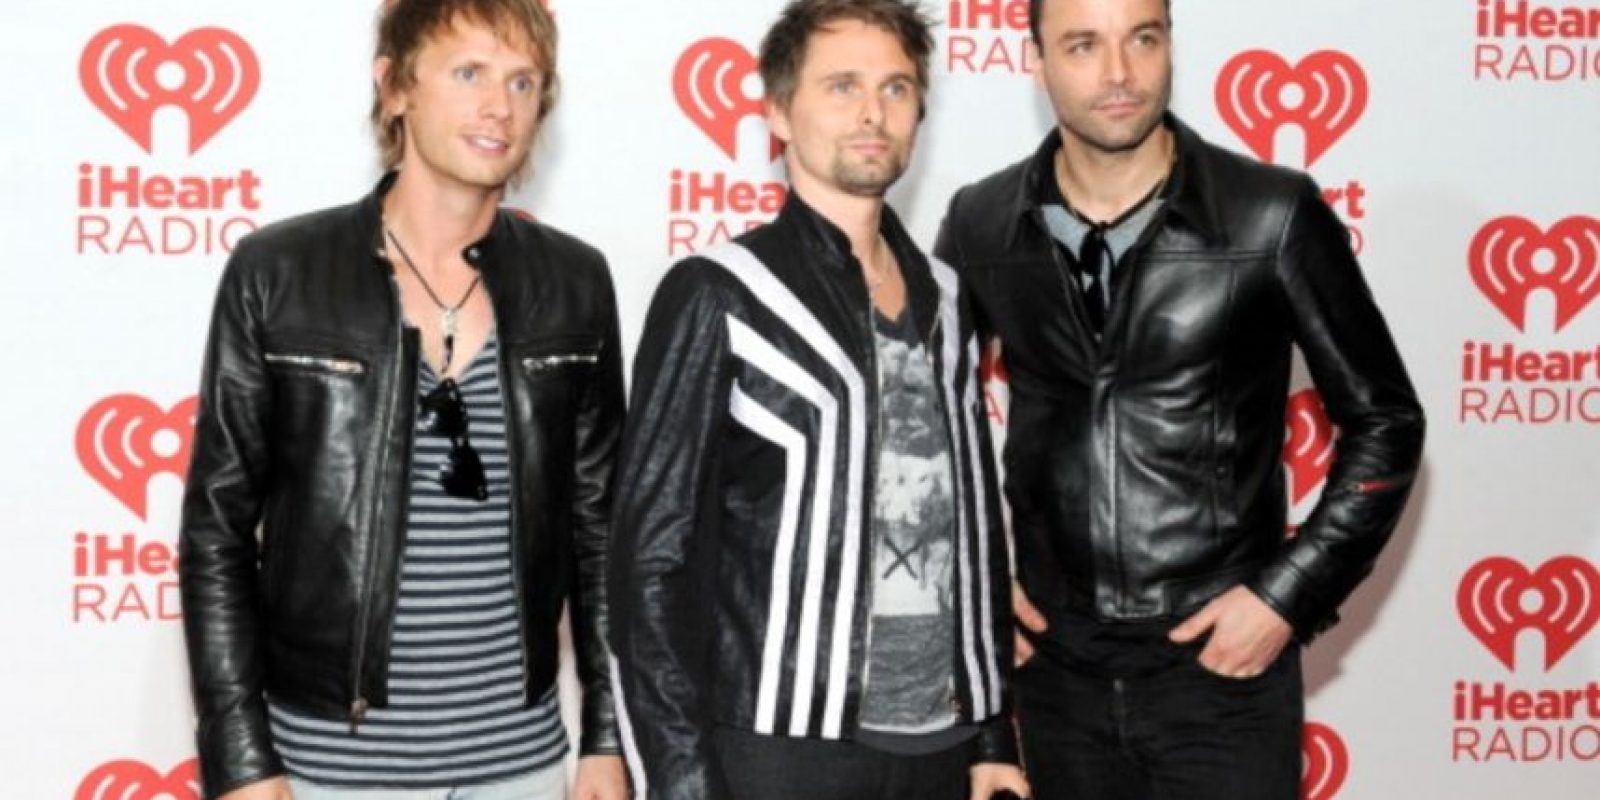 11. Muse obtuvo 1 millón de dólares de ganancia Foto: Getty Images